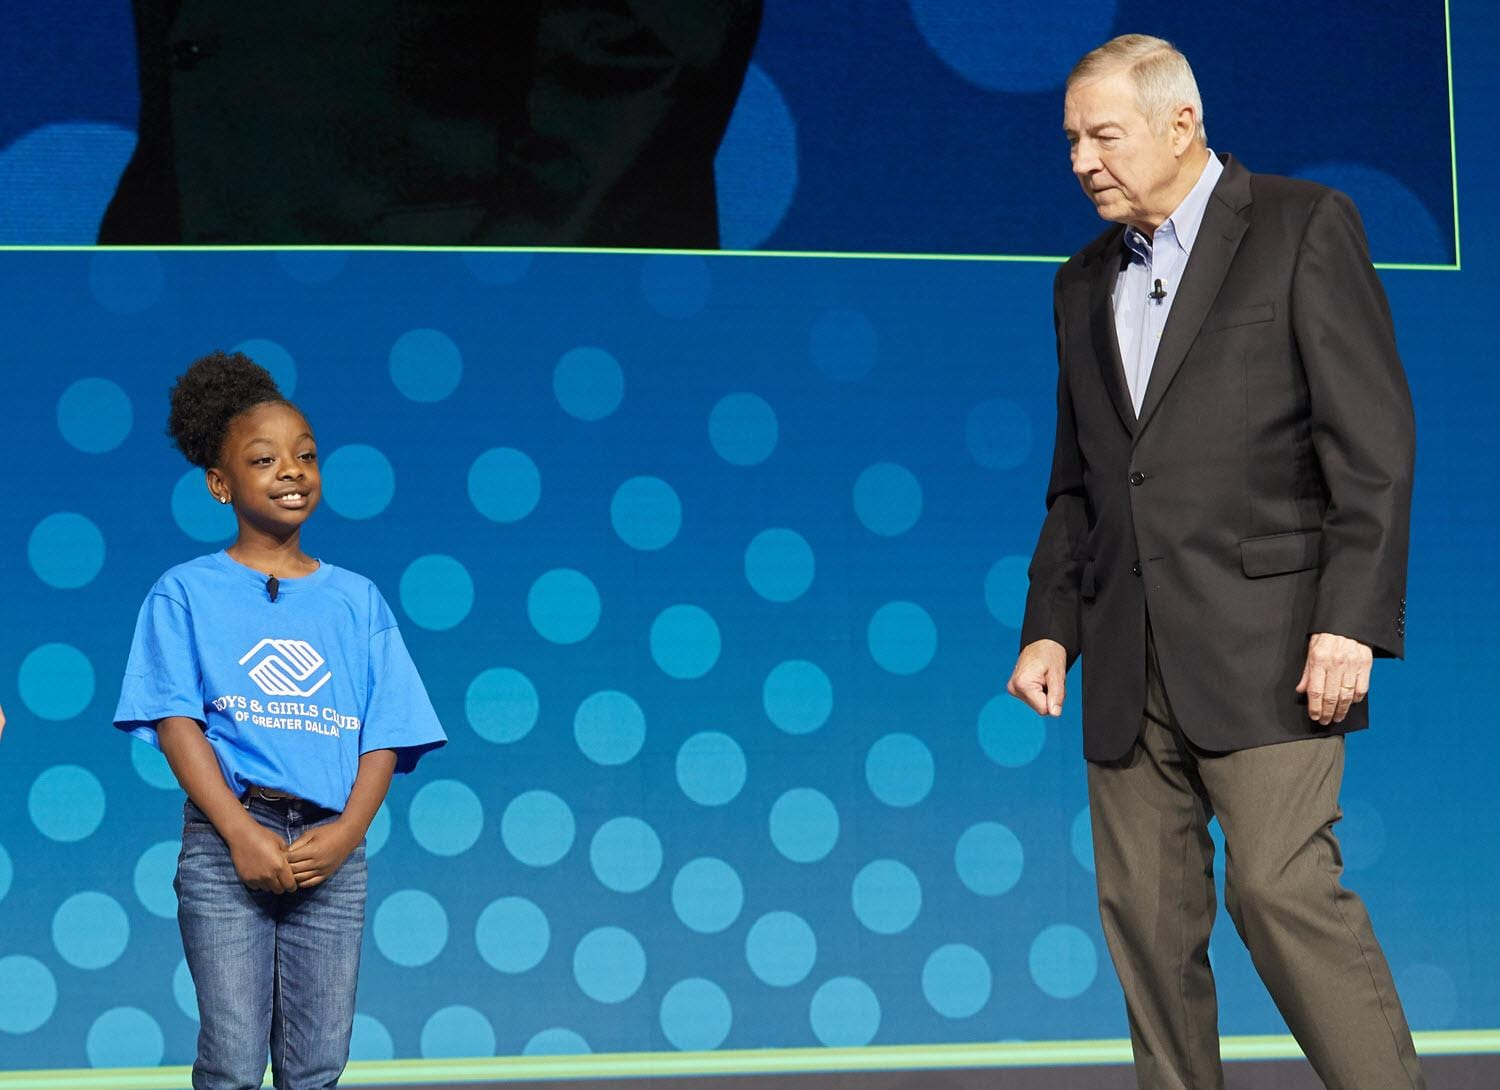 Dr. Jim Goodnight on SAS Global Forum 2019 stage with Jeneah Johnson from Boys and Girls club